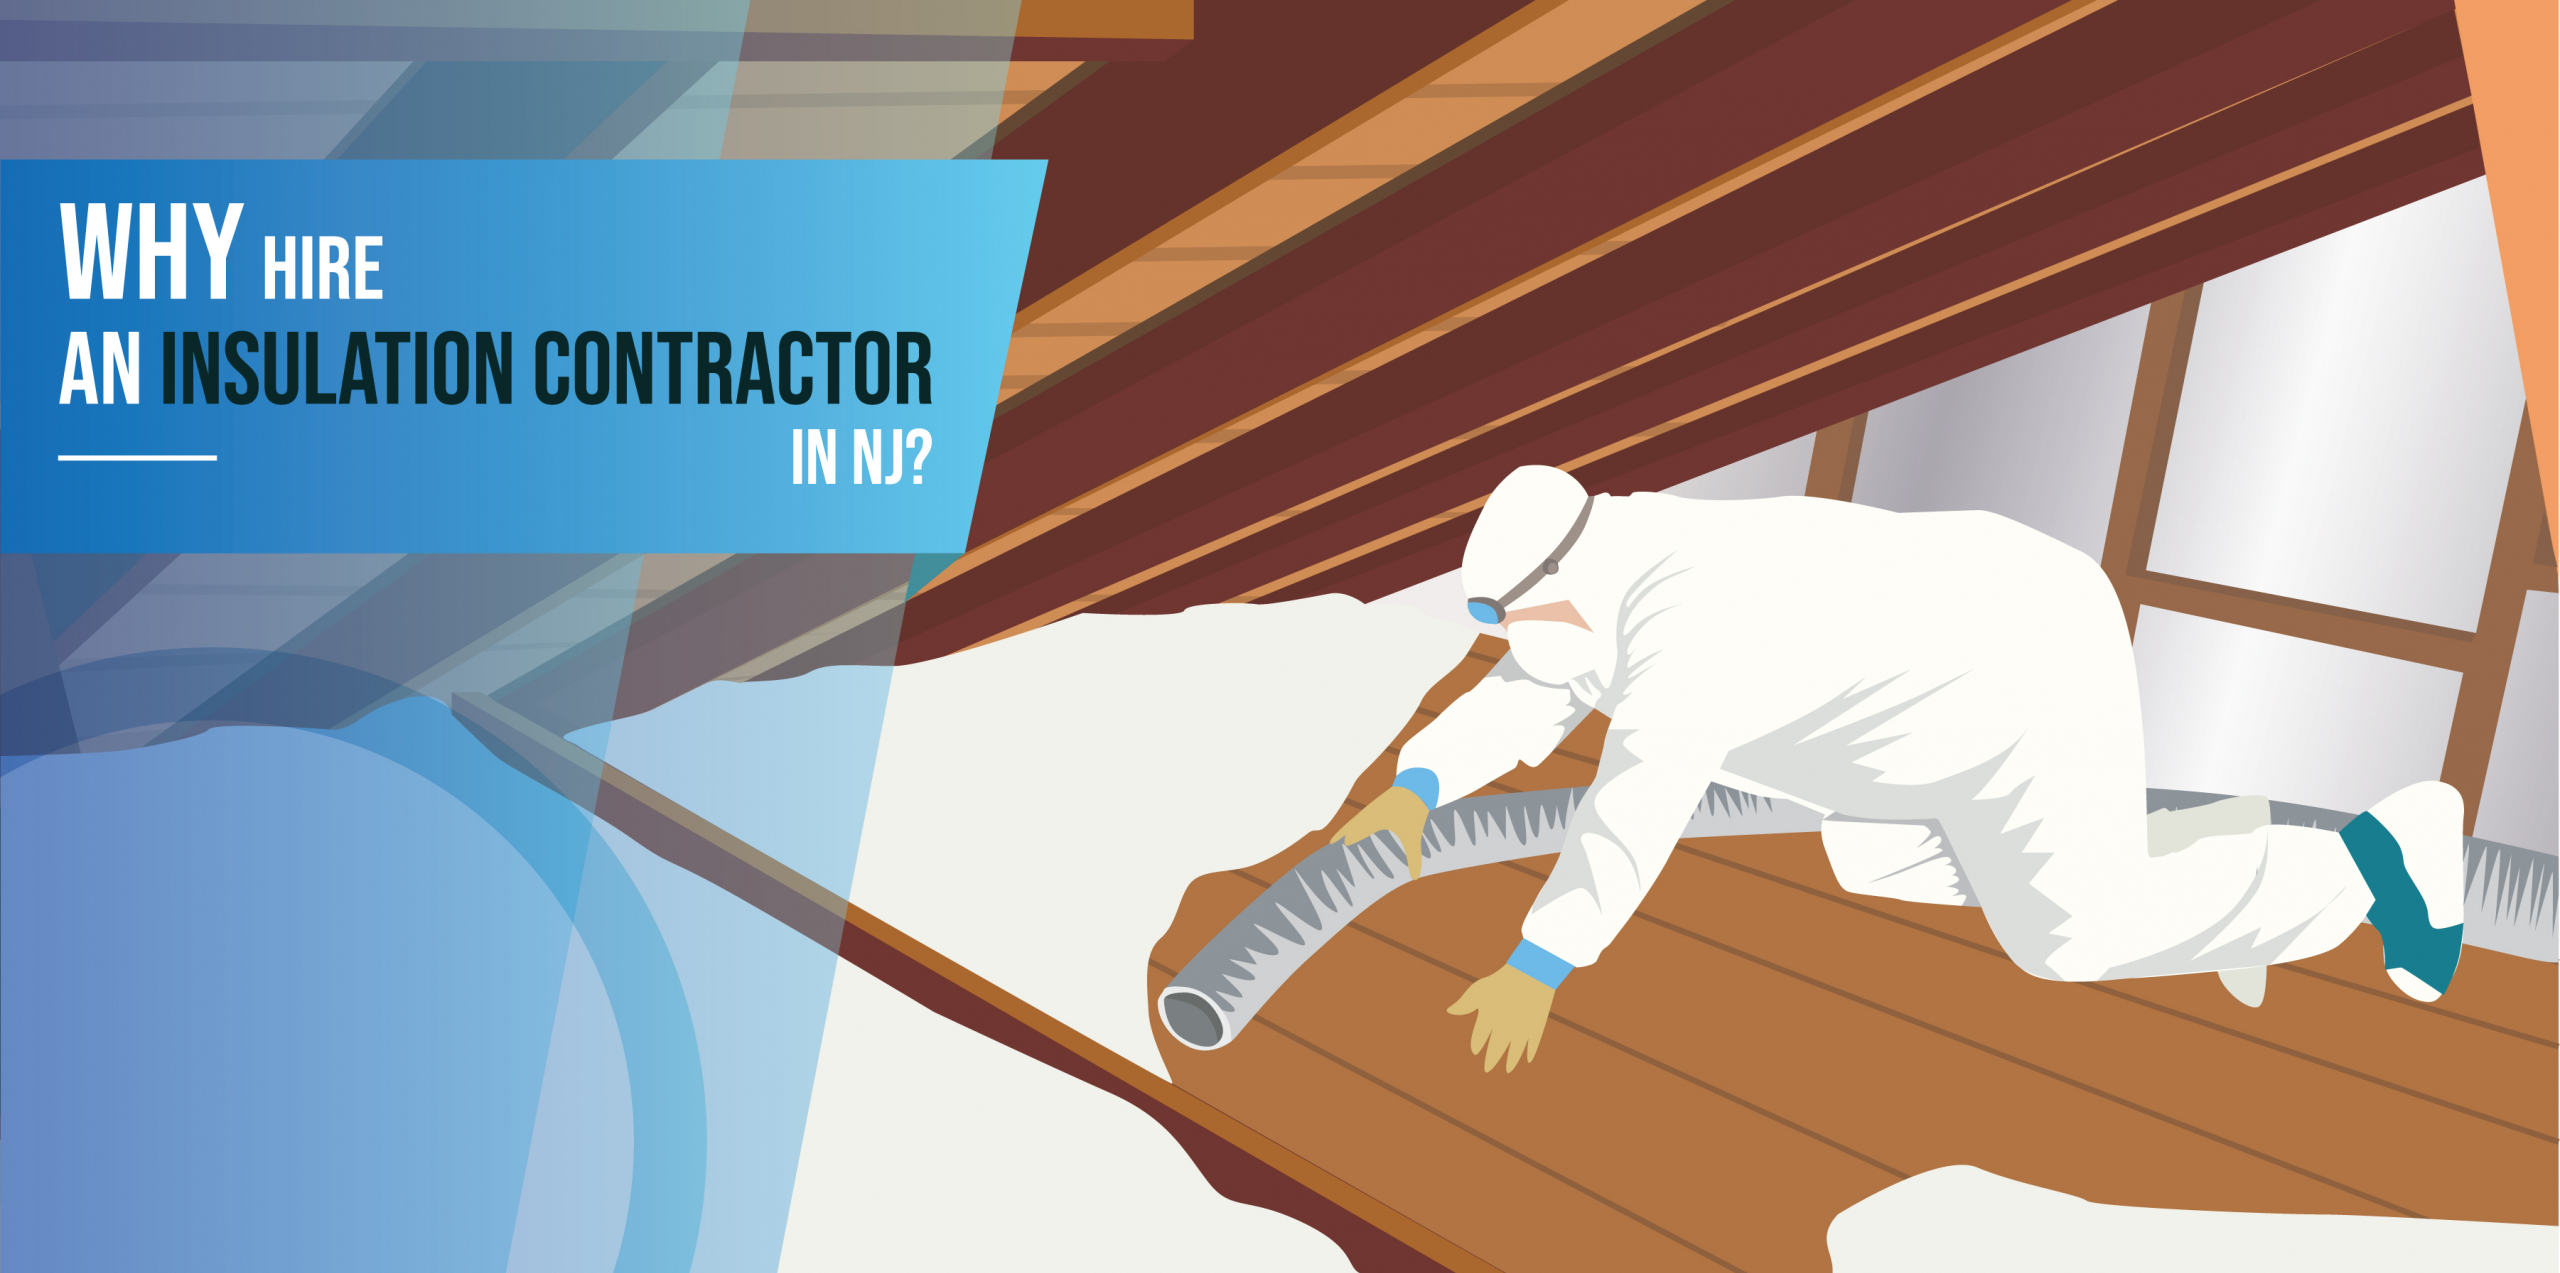 Why Hire an Insulation Contractor in NJ?